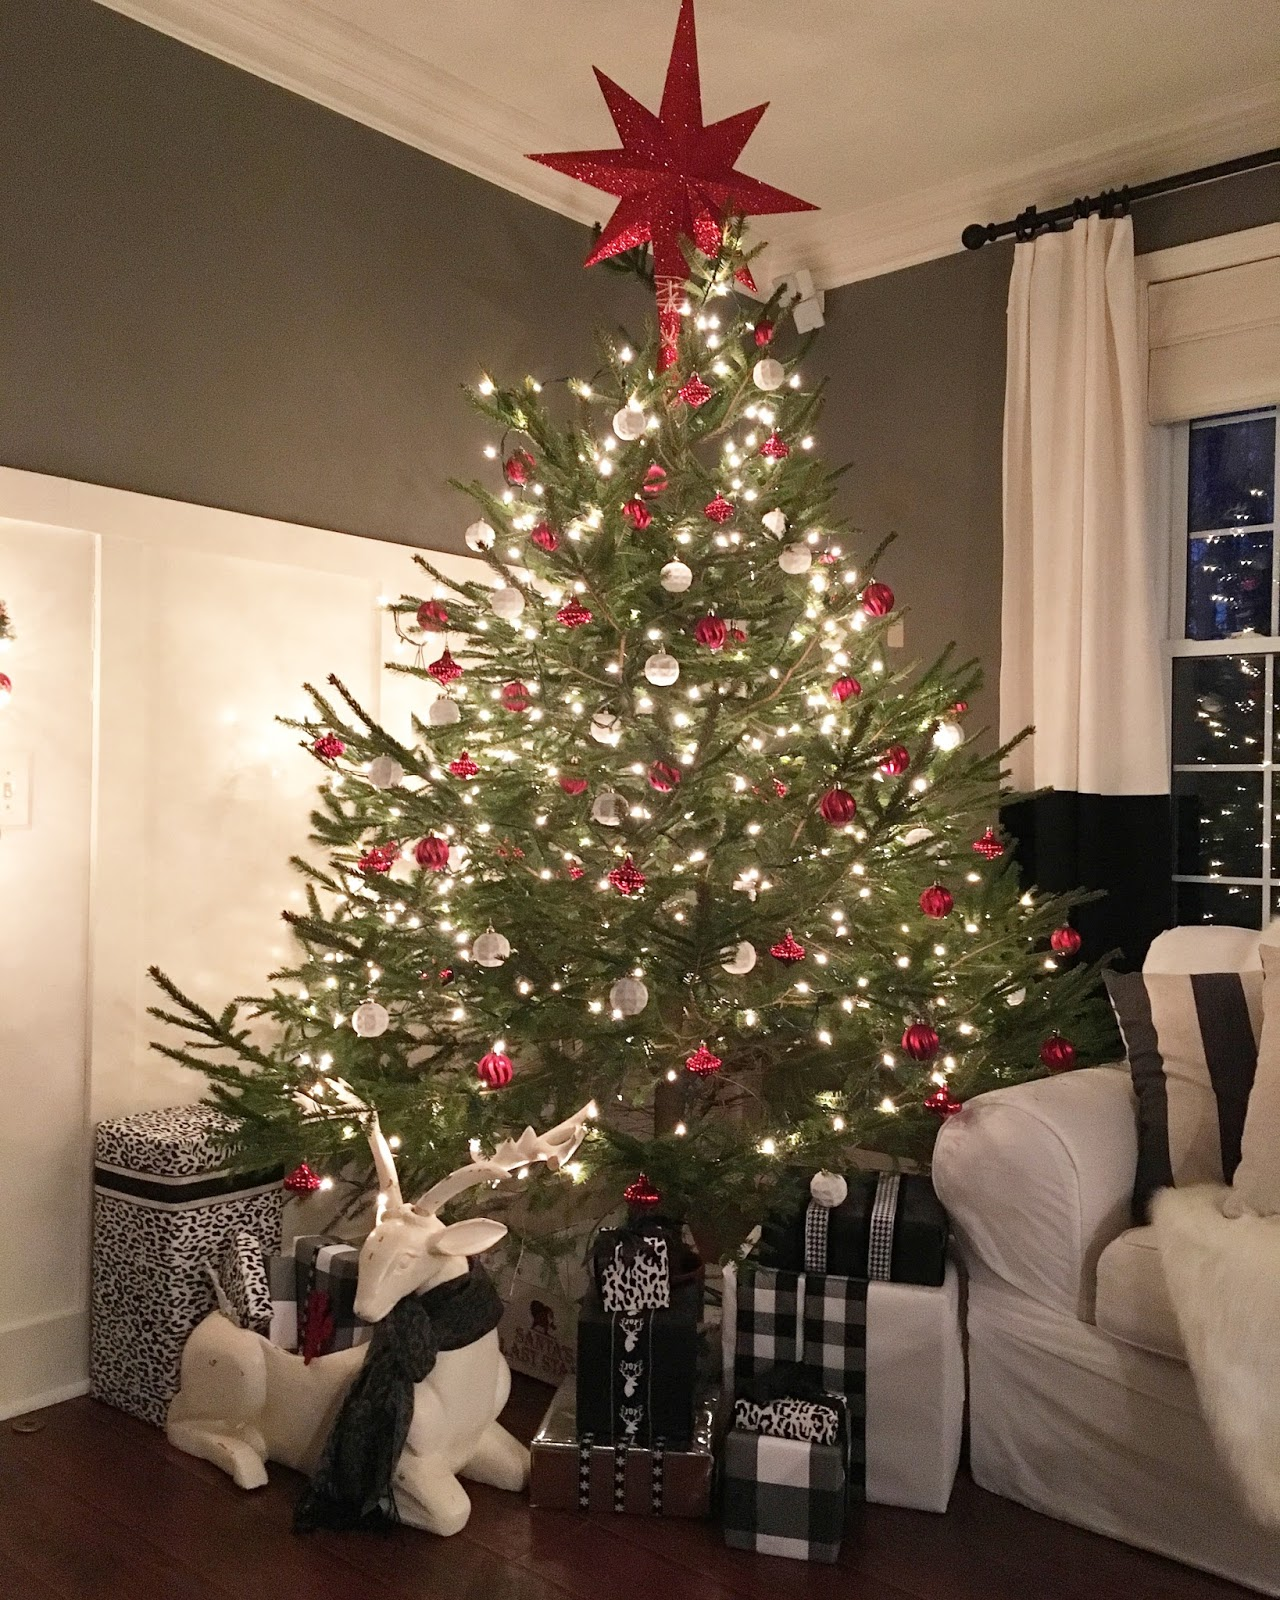 Where Does Christmas Trees Come From: The Yellow Cape Cod: Everything You Need To Know About A